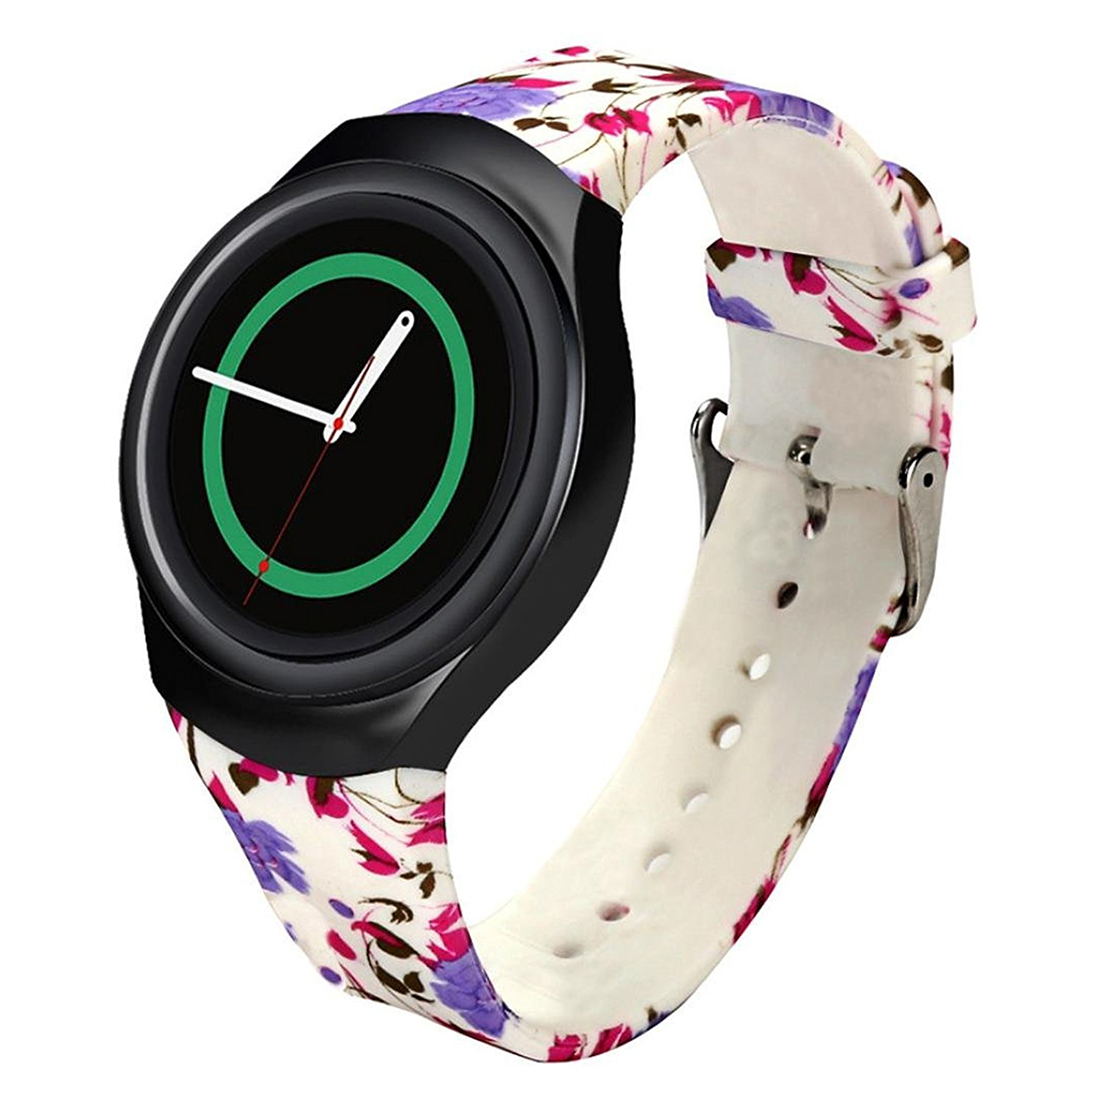 Gear S2 Watch Band, Luxury TPU Silicone Strap Watch Band for Samsung Galaxy SM-R720 Colorful J gear s2 watch band luxury tpu silicone strap watch band for samsung galaxy sm r720 colorful j